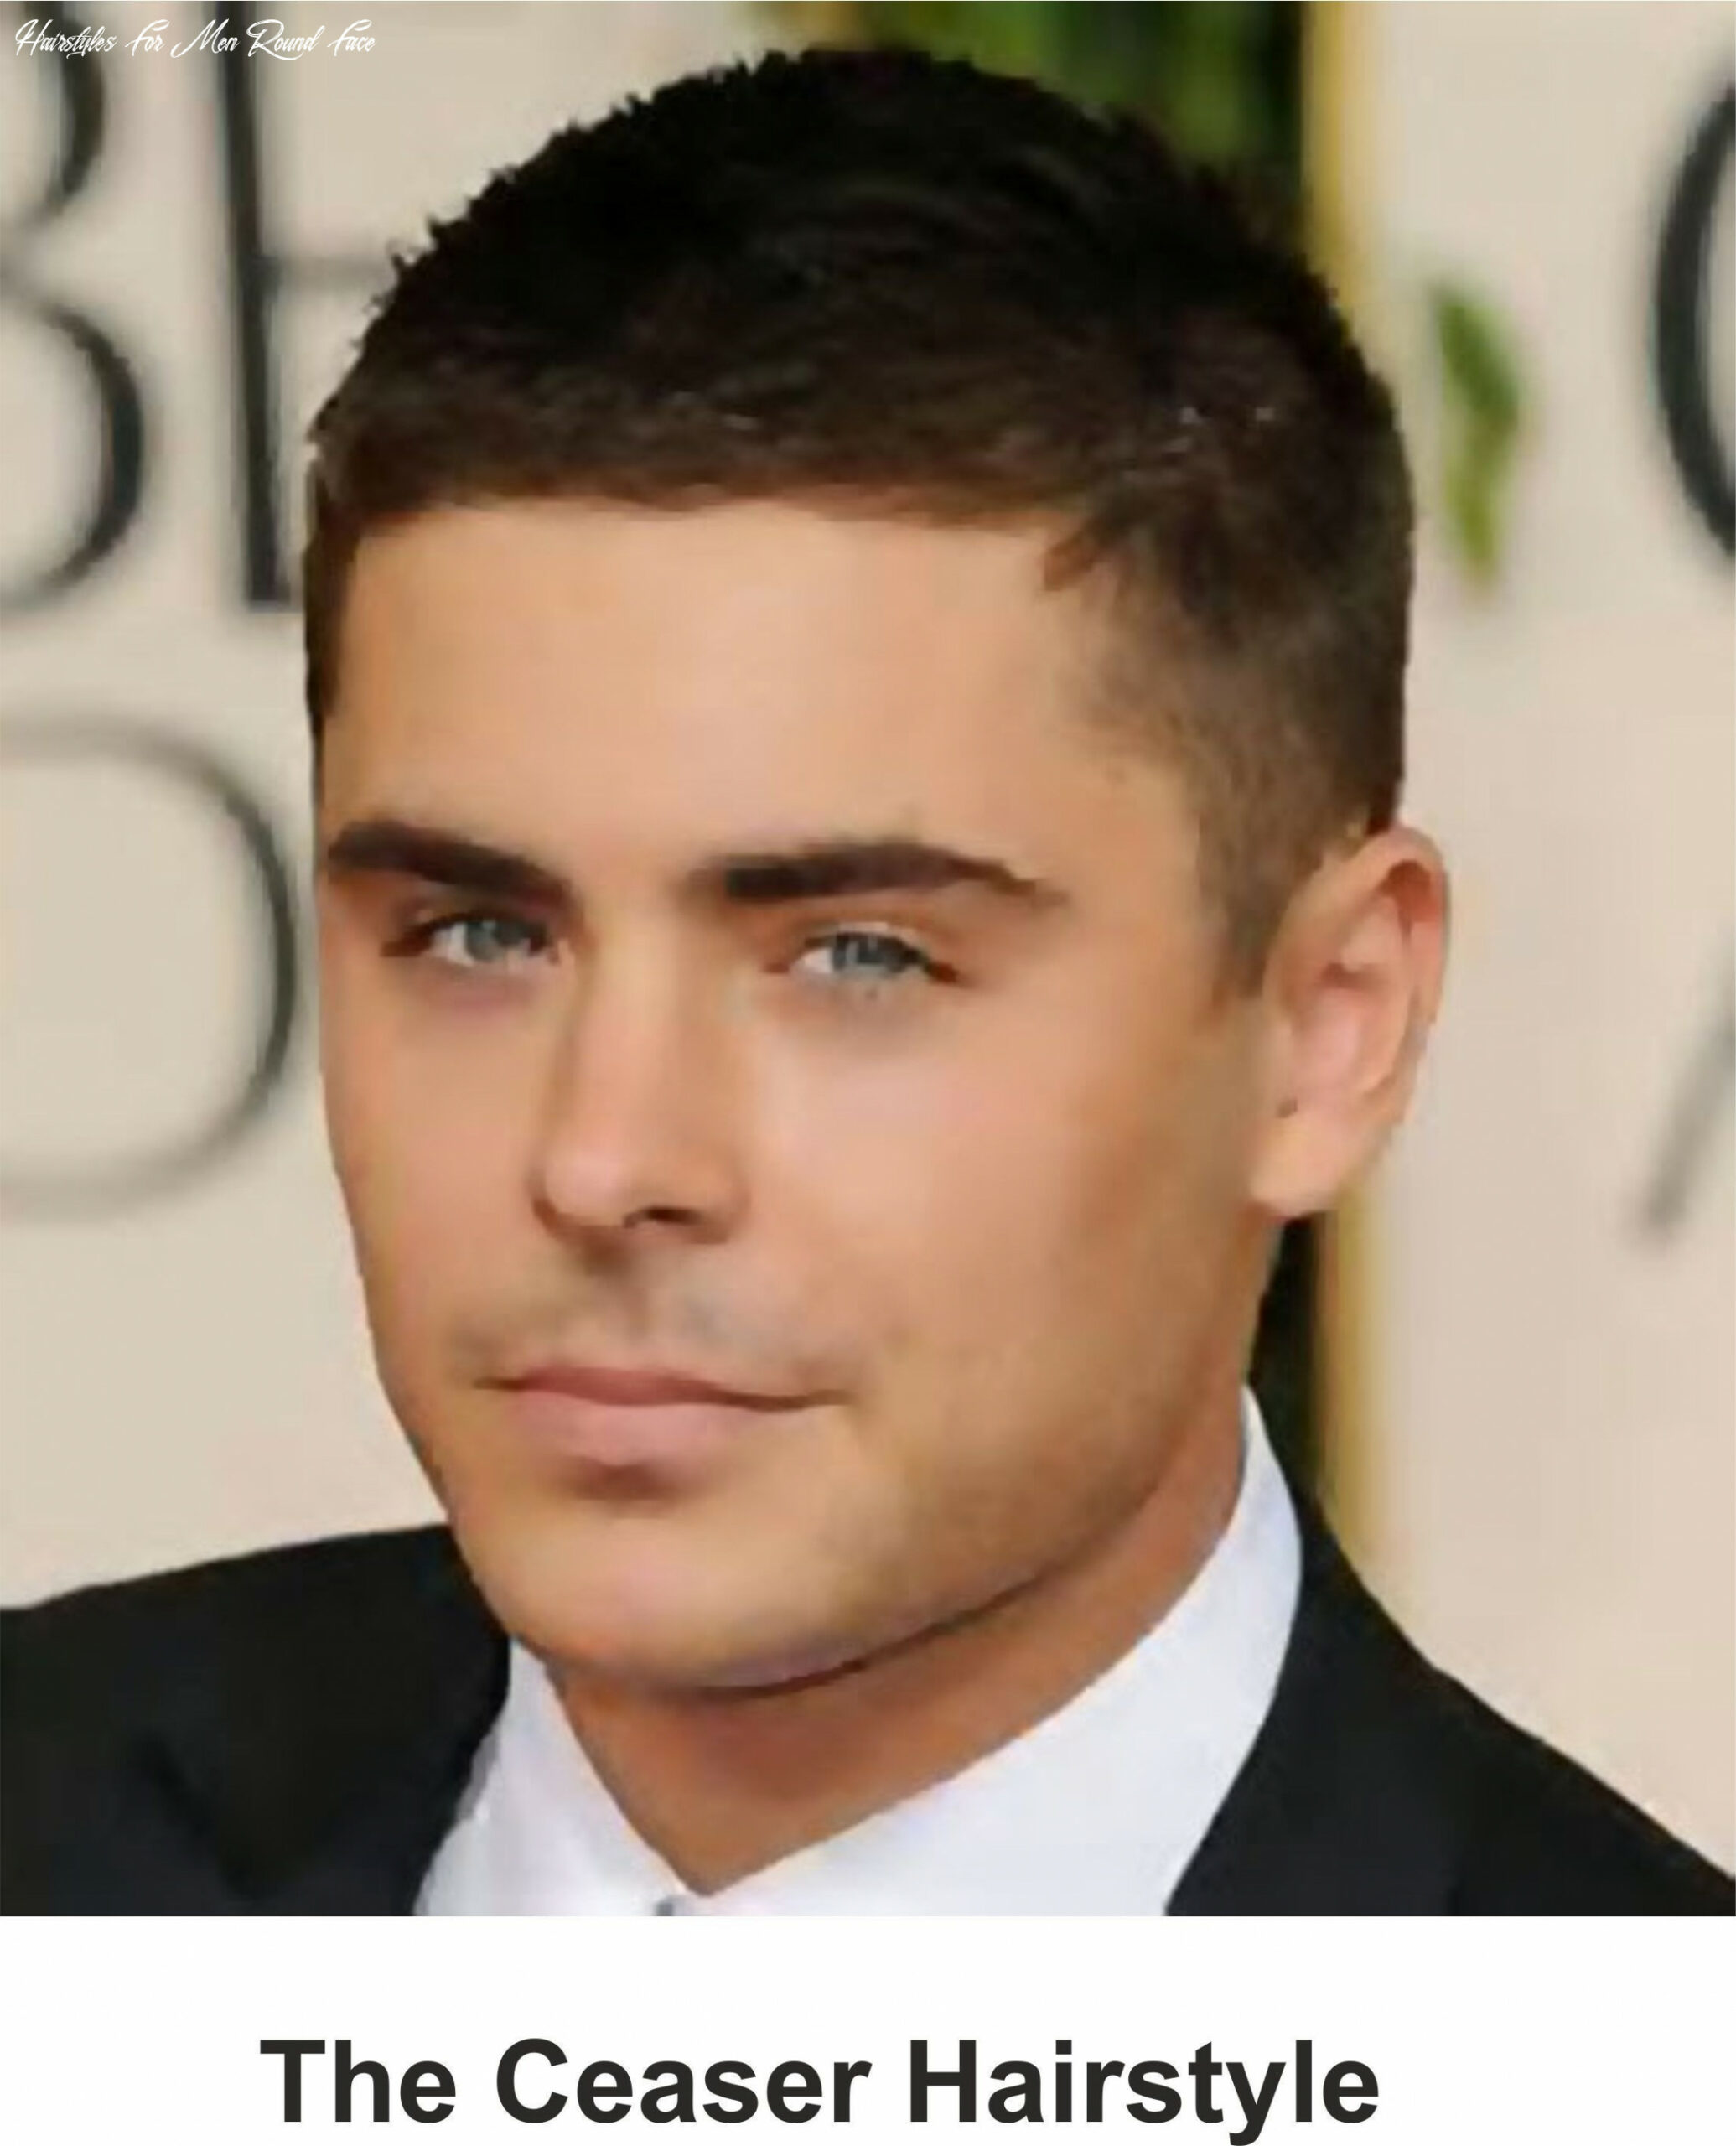 Hairstyles for men with round faces for wedding hairstyles